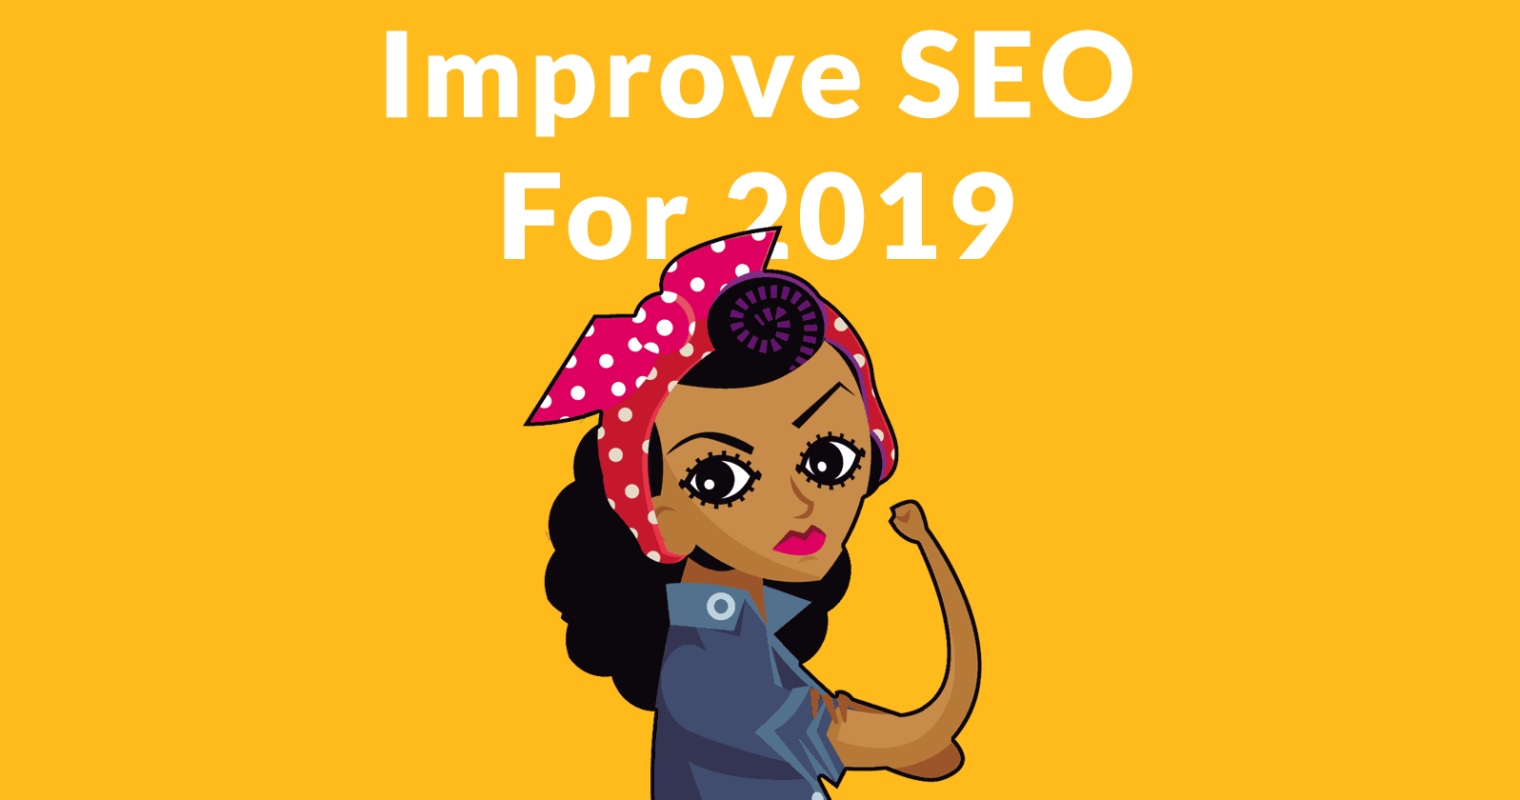 https://res.cloudinary.com/dpyy9uysx/image/upload/v1546090018/seo/seo-strategy-2019-seo-warriors.png